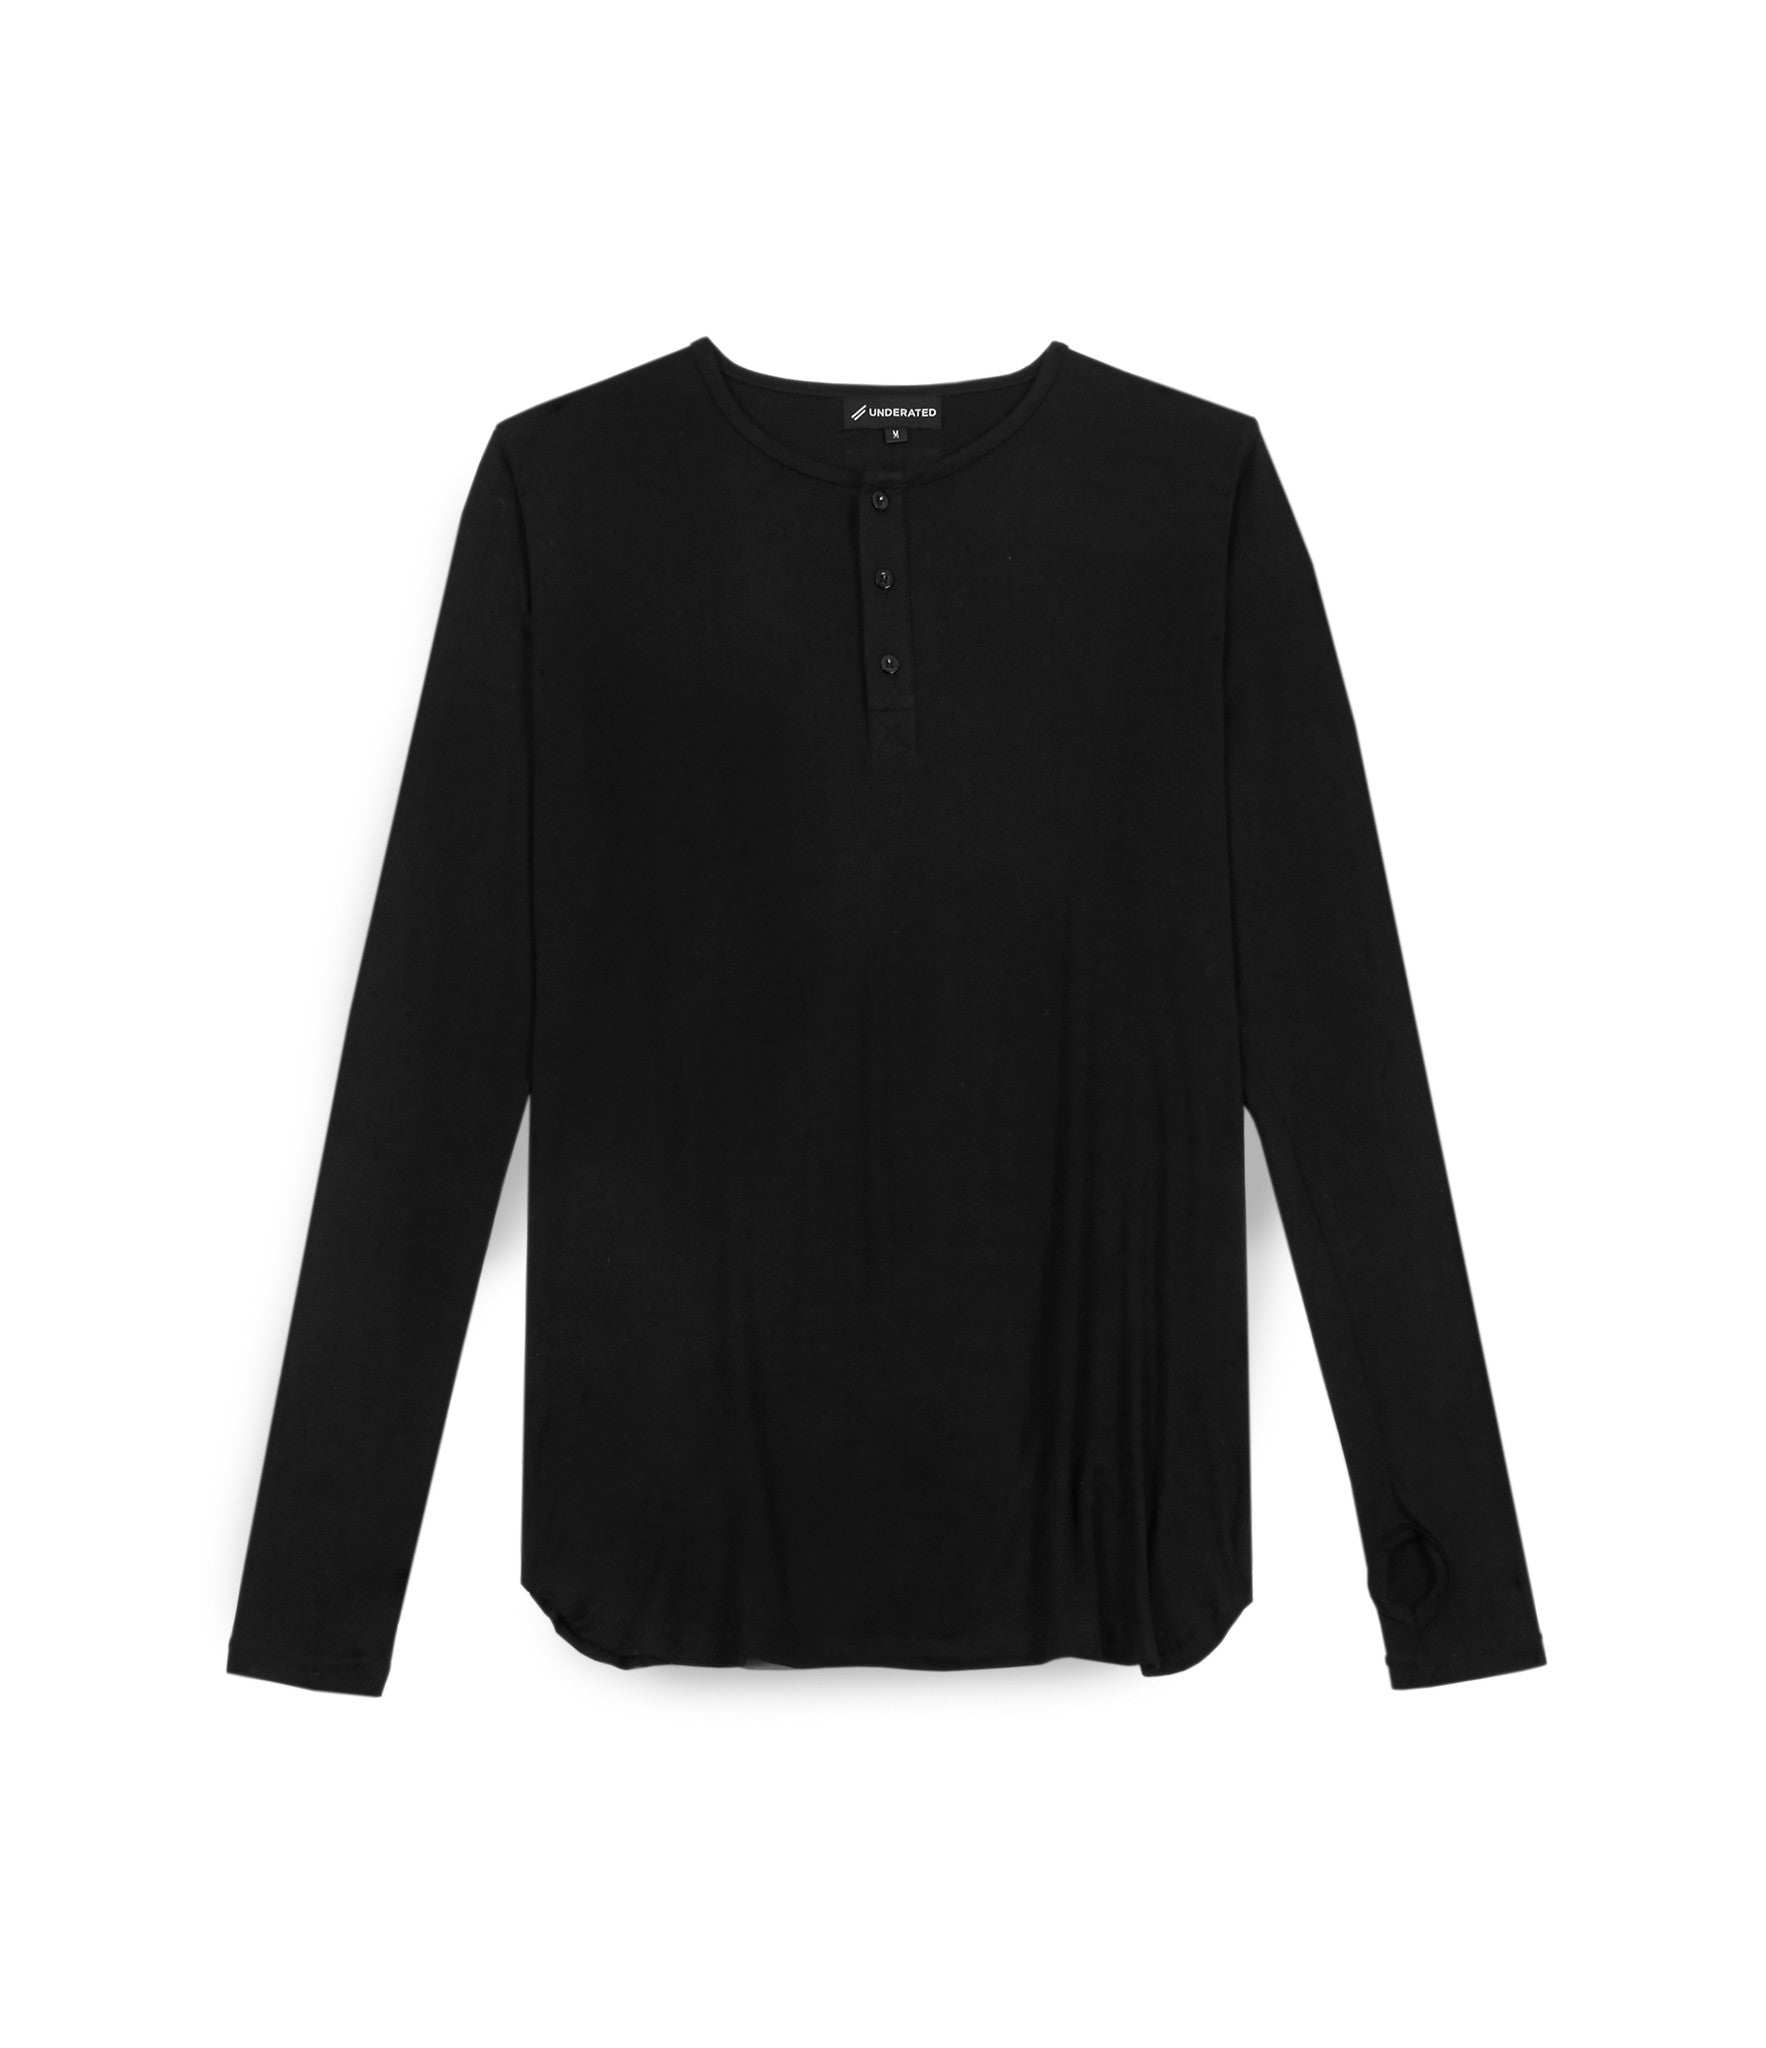 LS264 Under Layer Henley Tee - Black - underated london - underatedco - 1